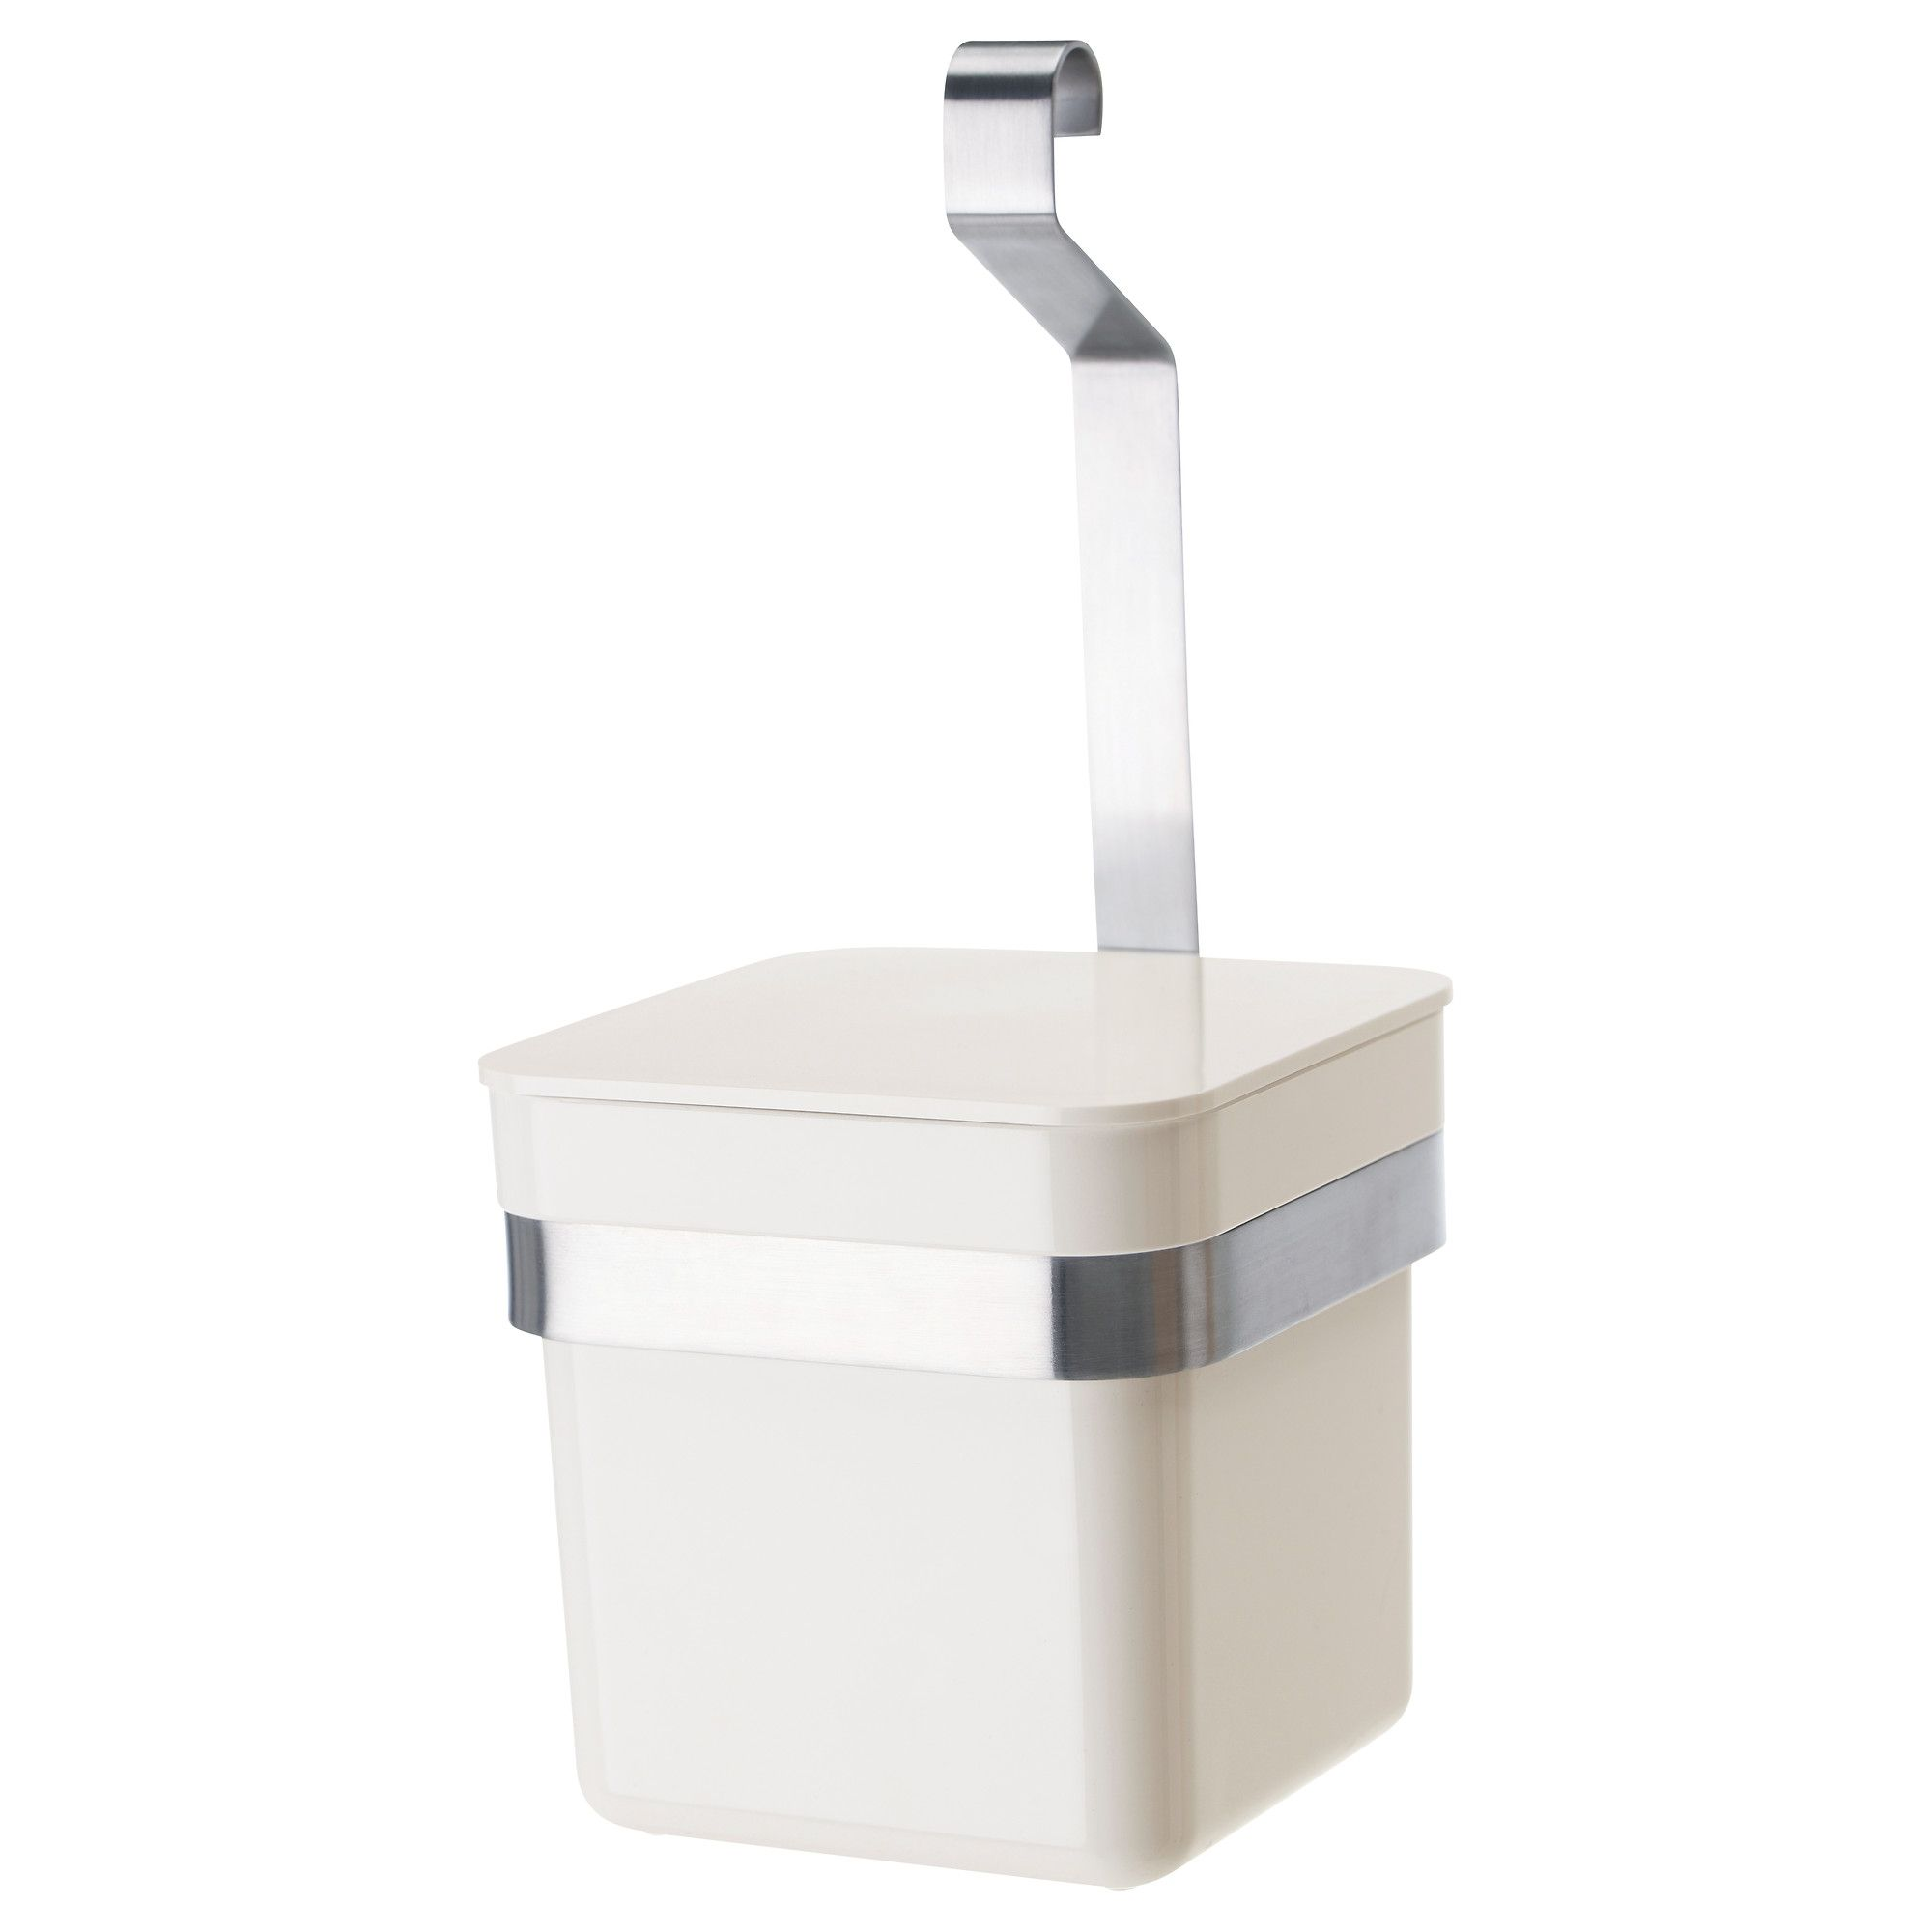 Grundtal Container  Ikea To Hold The Soap Dispenser That